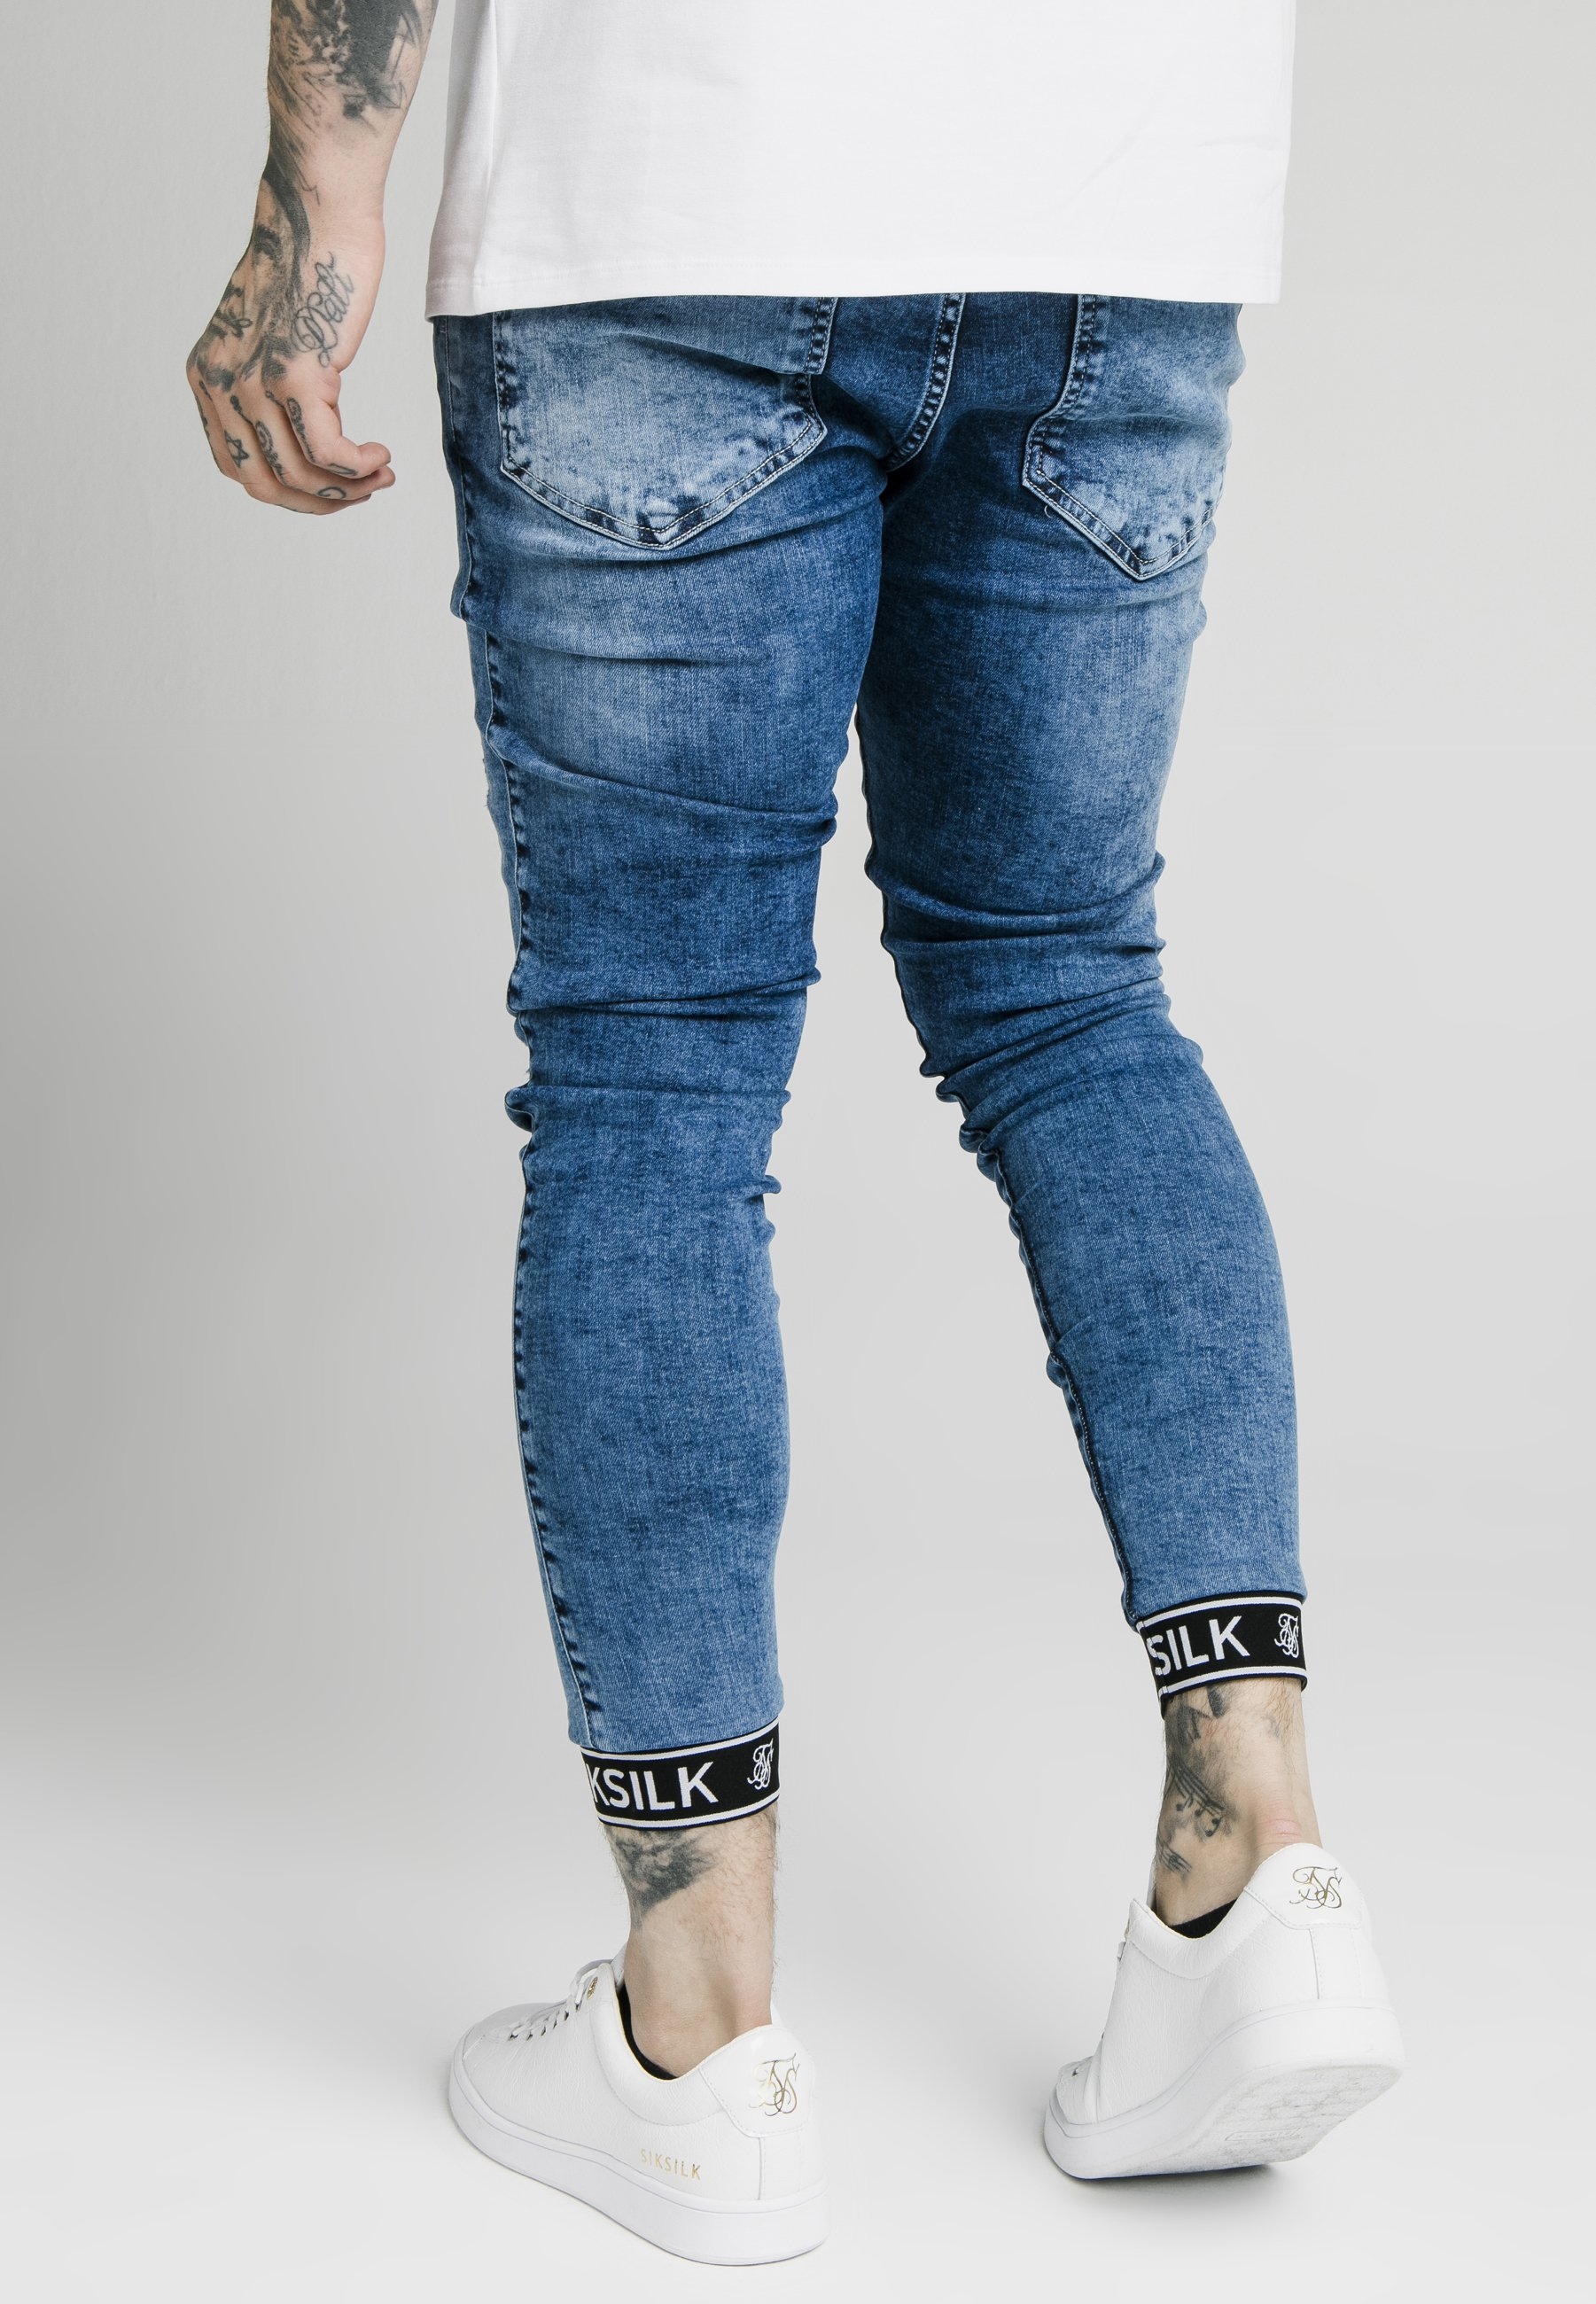 Reliable Fast Express Men's Clothing SIKSILK SKINNY CUFFED JEANS Jeans Skinny Fit blue AJ3HdGO3X cdxxo5YYP